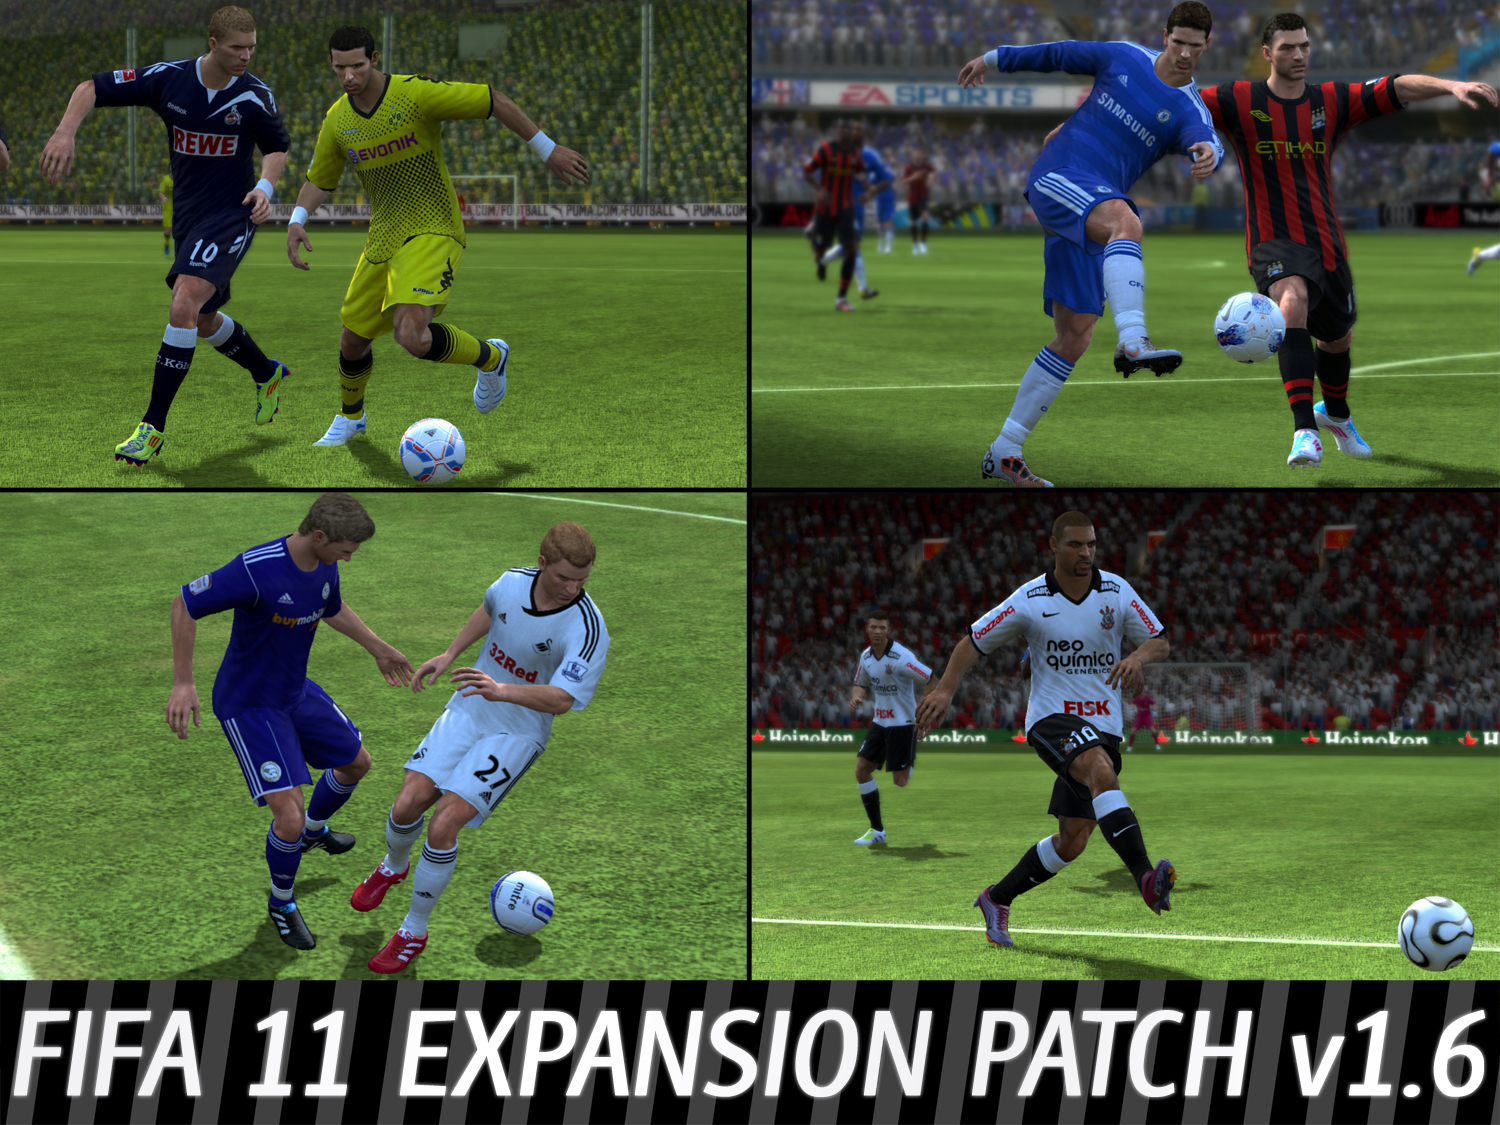 Скачать Patch Expansion Patch v1.6 (FIFA 11) ENG футбол, Патч, FIFA, PC, иг